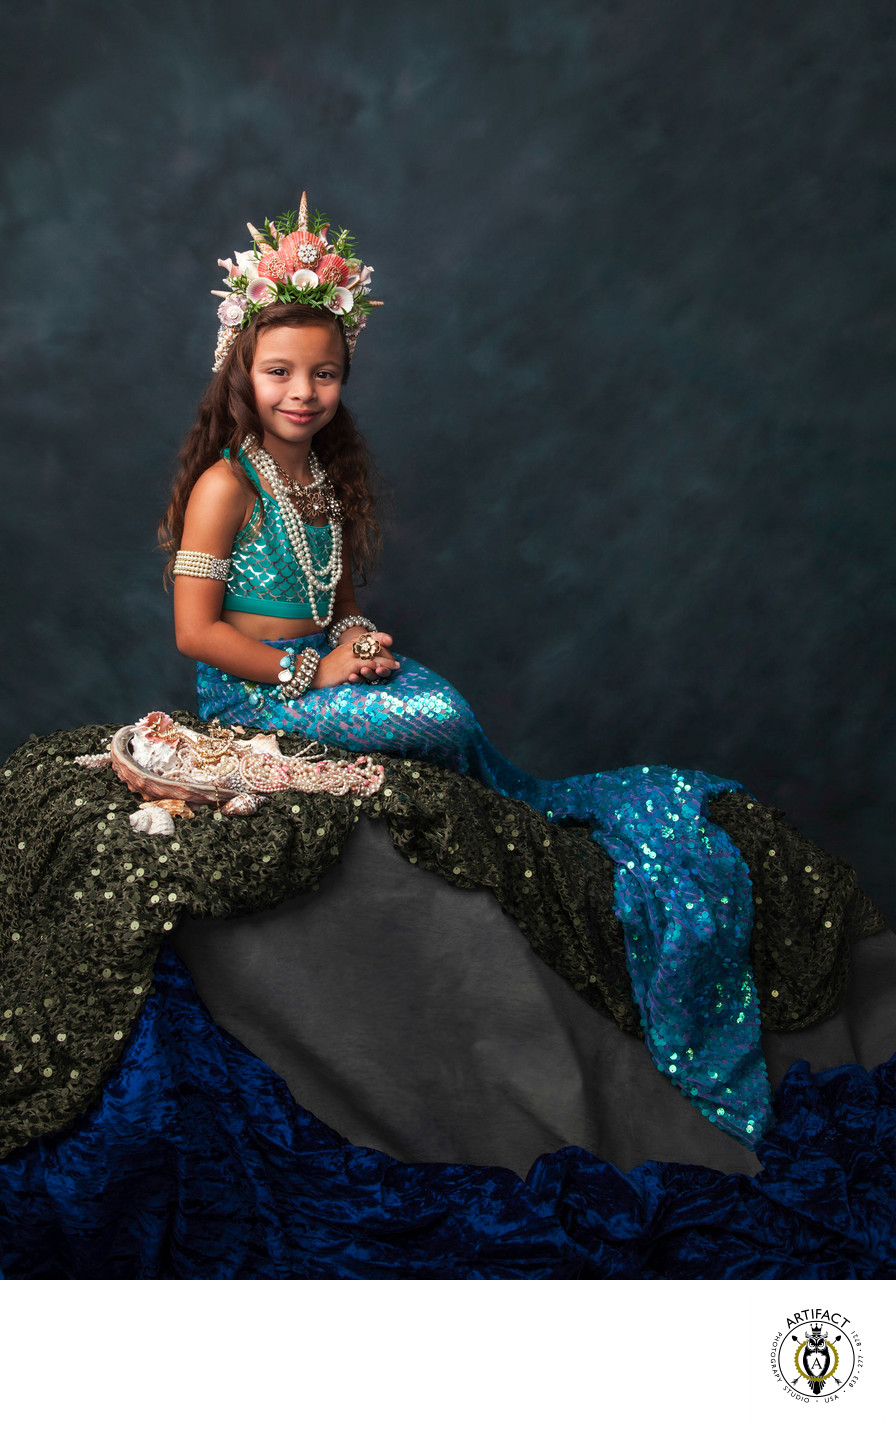 The Little Mermaid | Aliyah